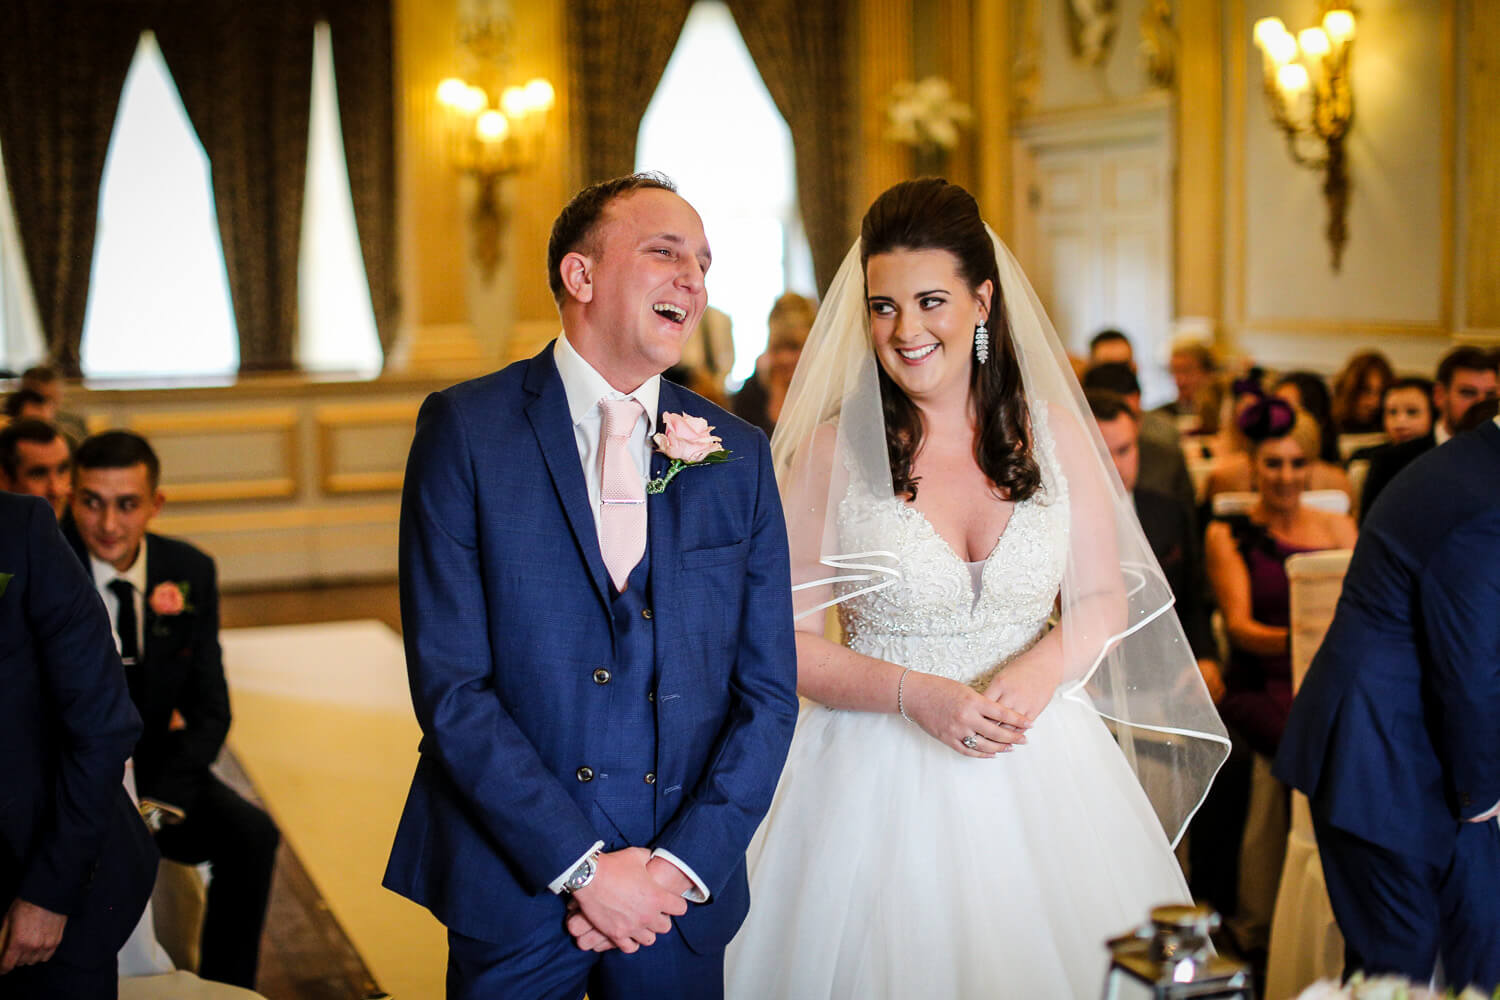 Stucco Ball Room wedding ceremony Knowsley Hall wedding photography